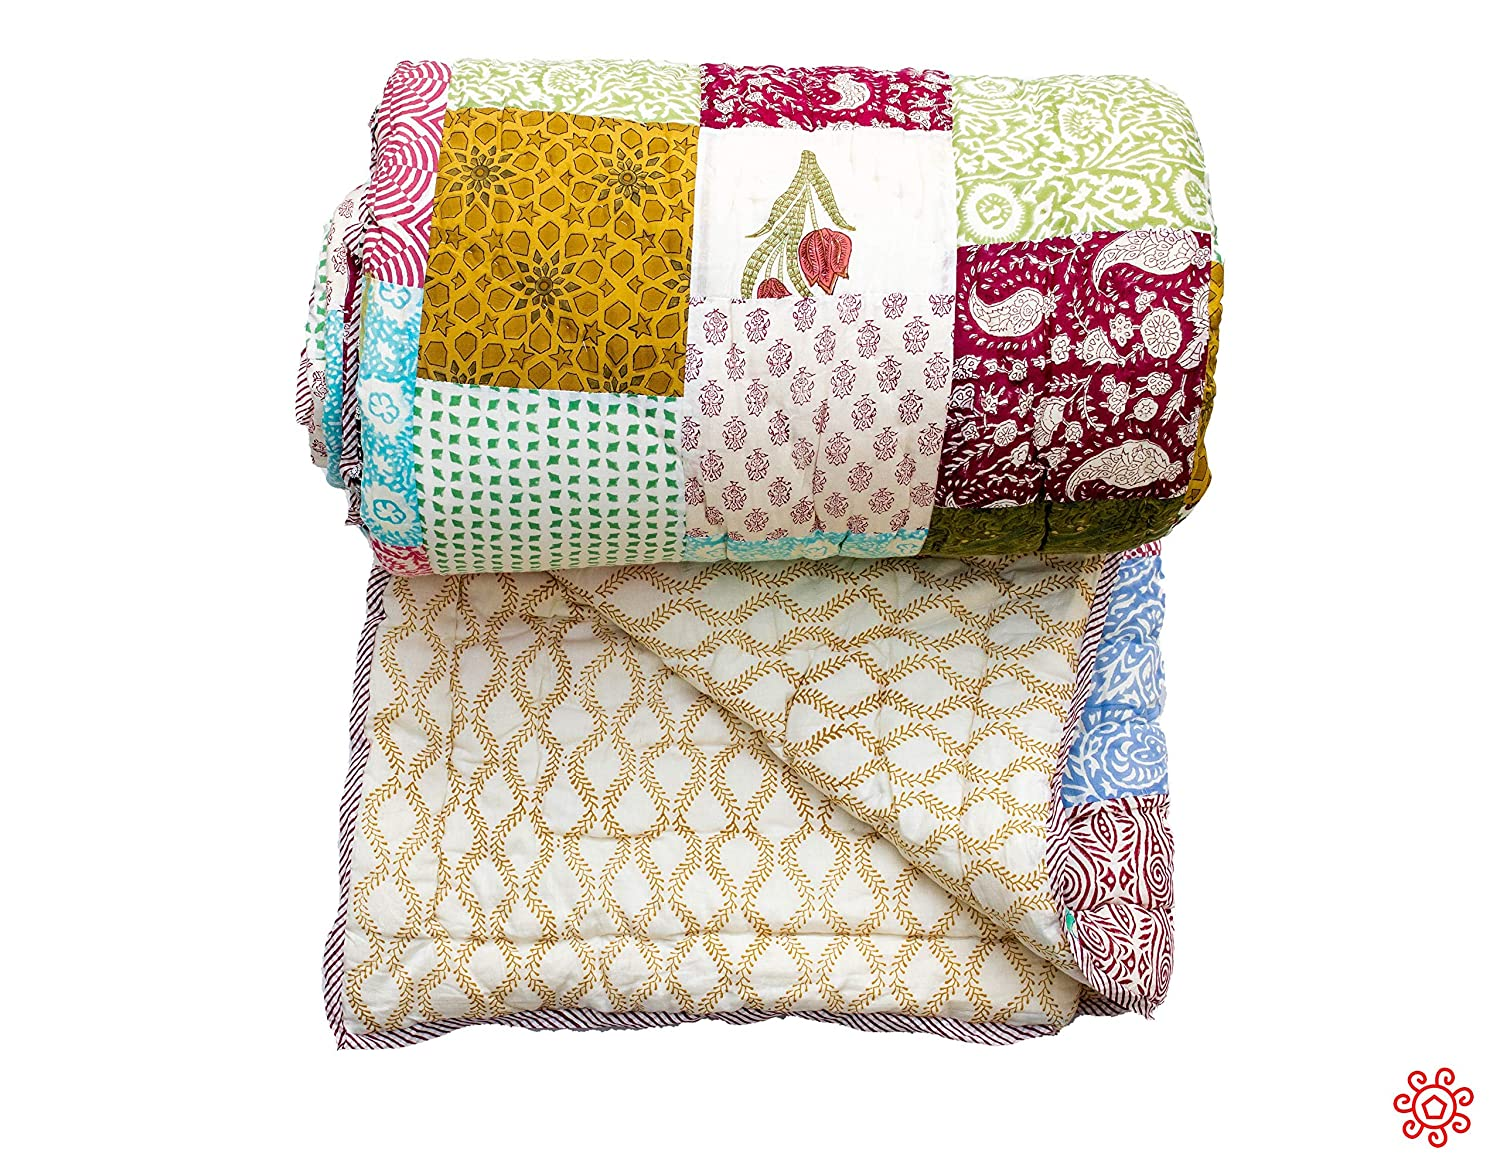 Image of All New Roysha 2020 Queen Quilt Collection - 100 Percent Handmade Patchwork Quilt - Qpw/206 Home and Kitchen